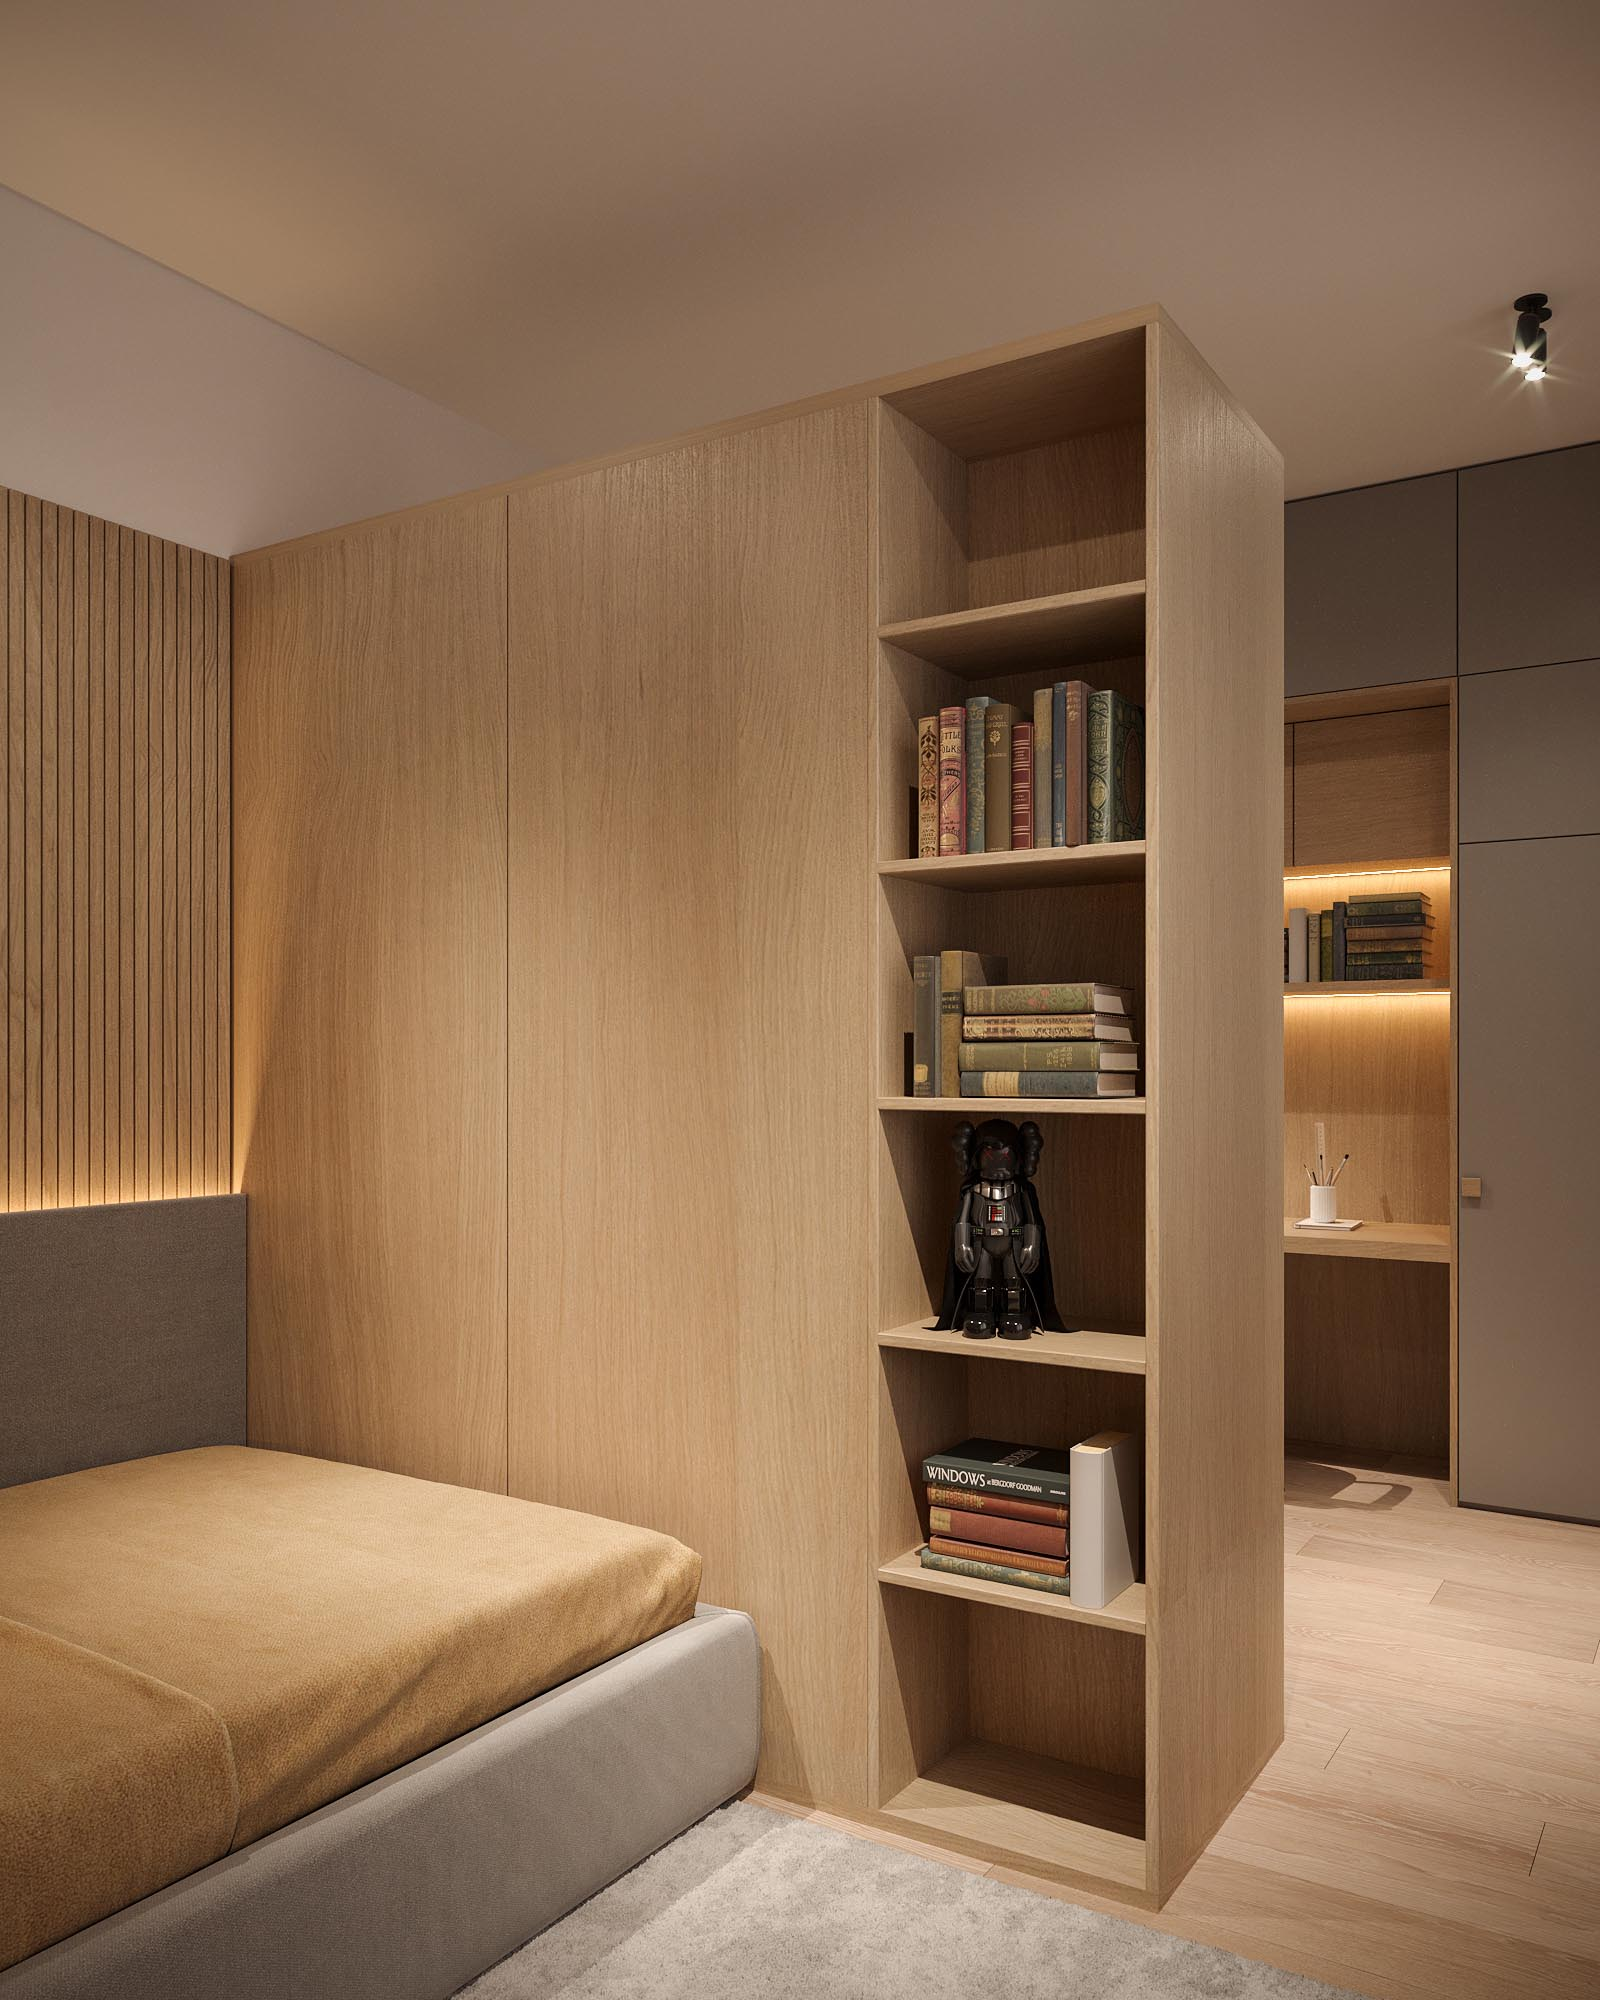 A modern bedroom with built-in shelving.